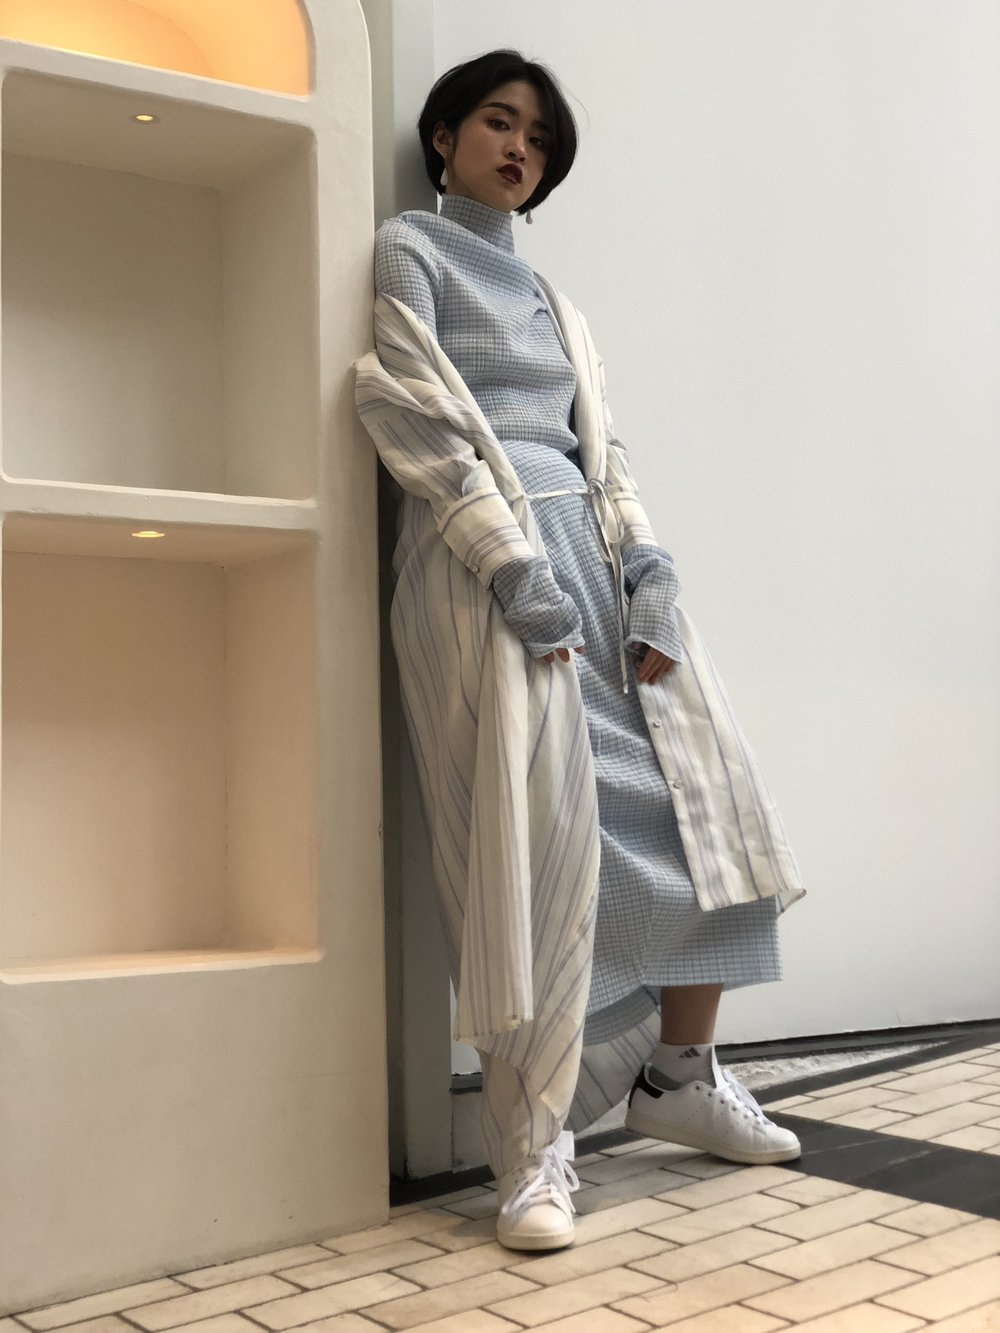 Outfit #2 is head to (nearly) toe Jil Sander.